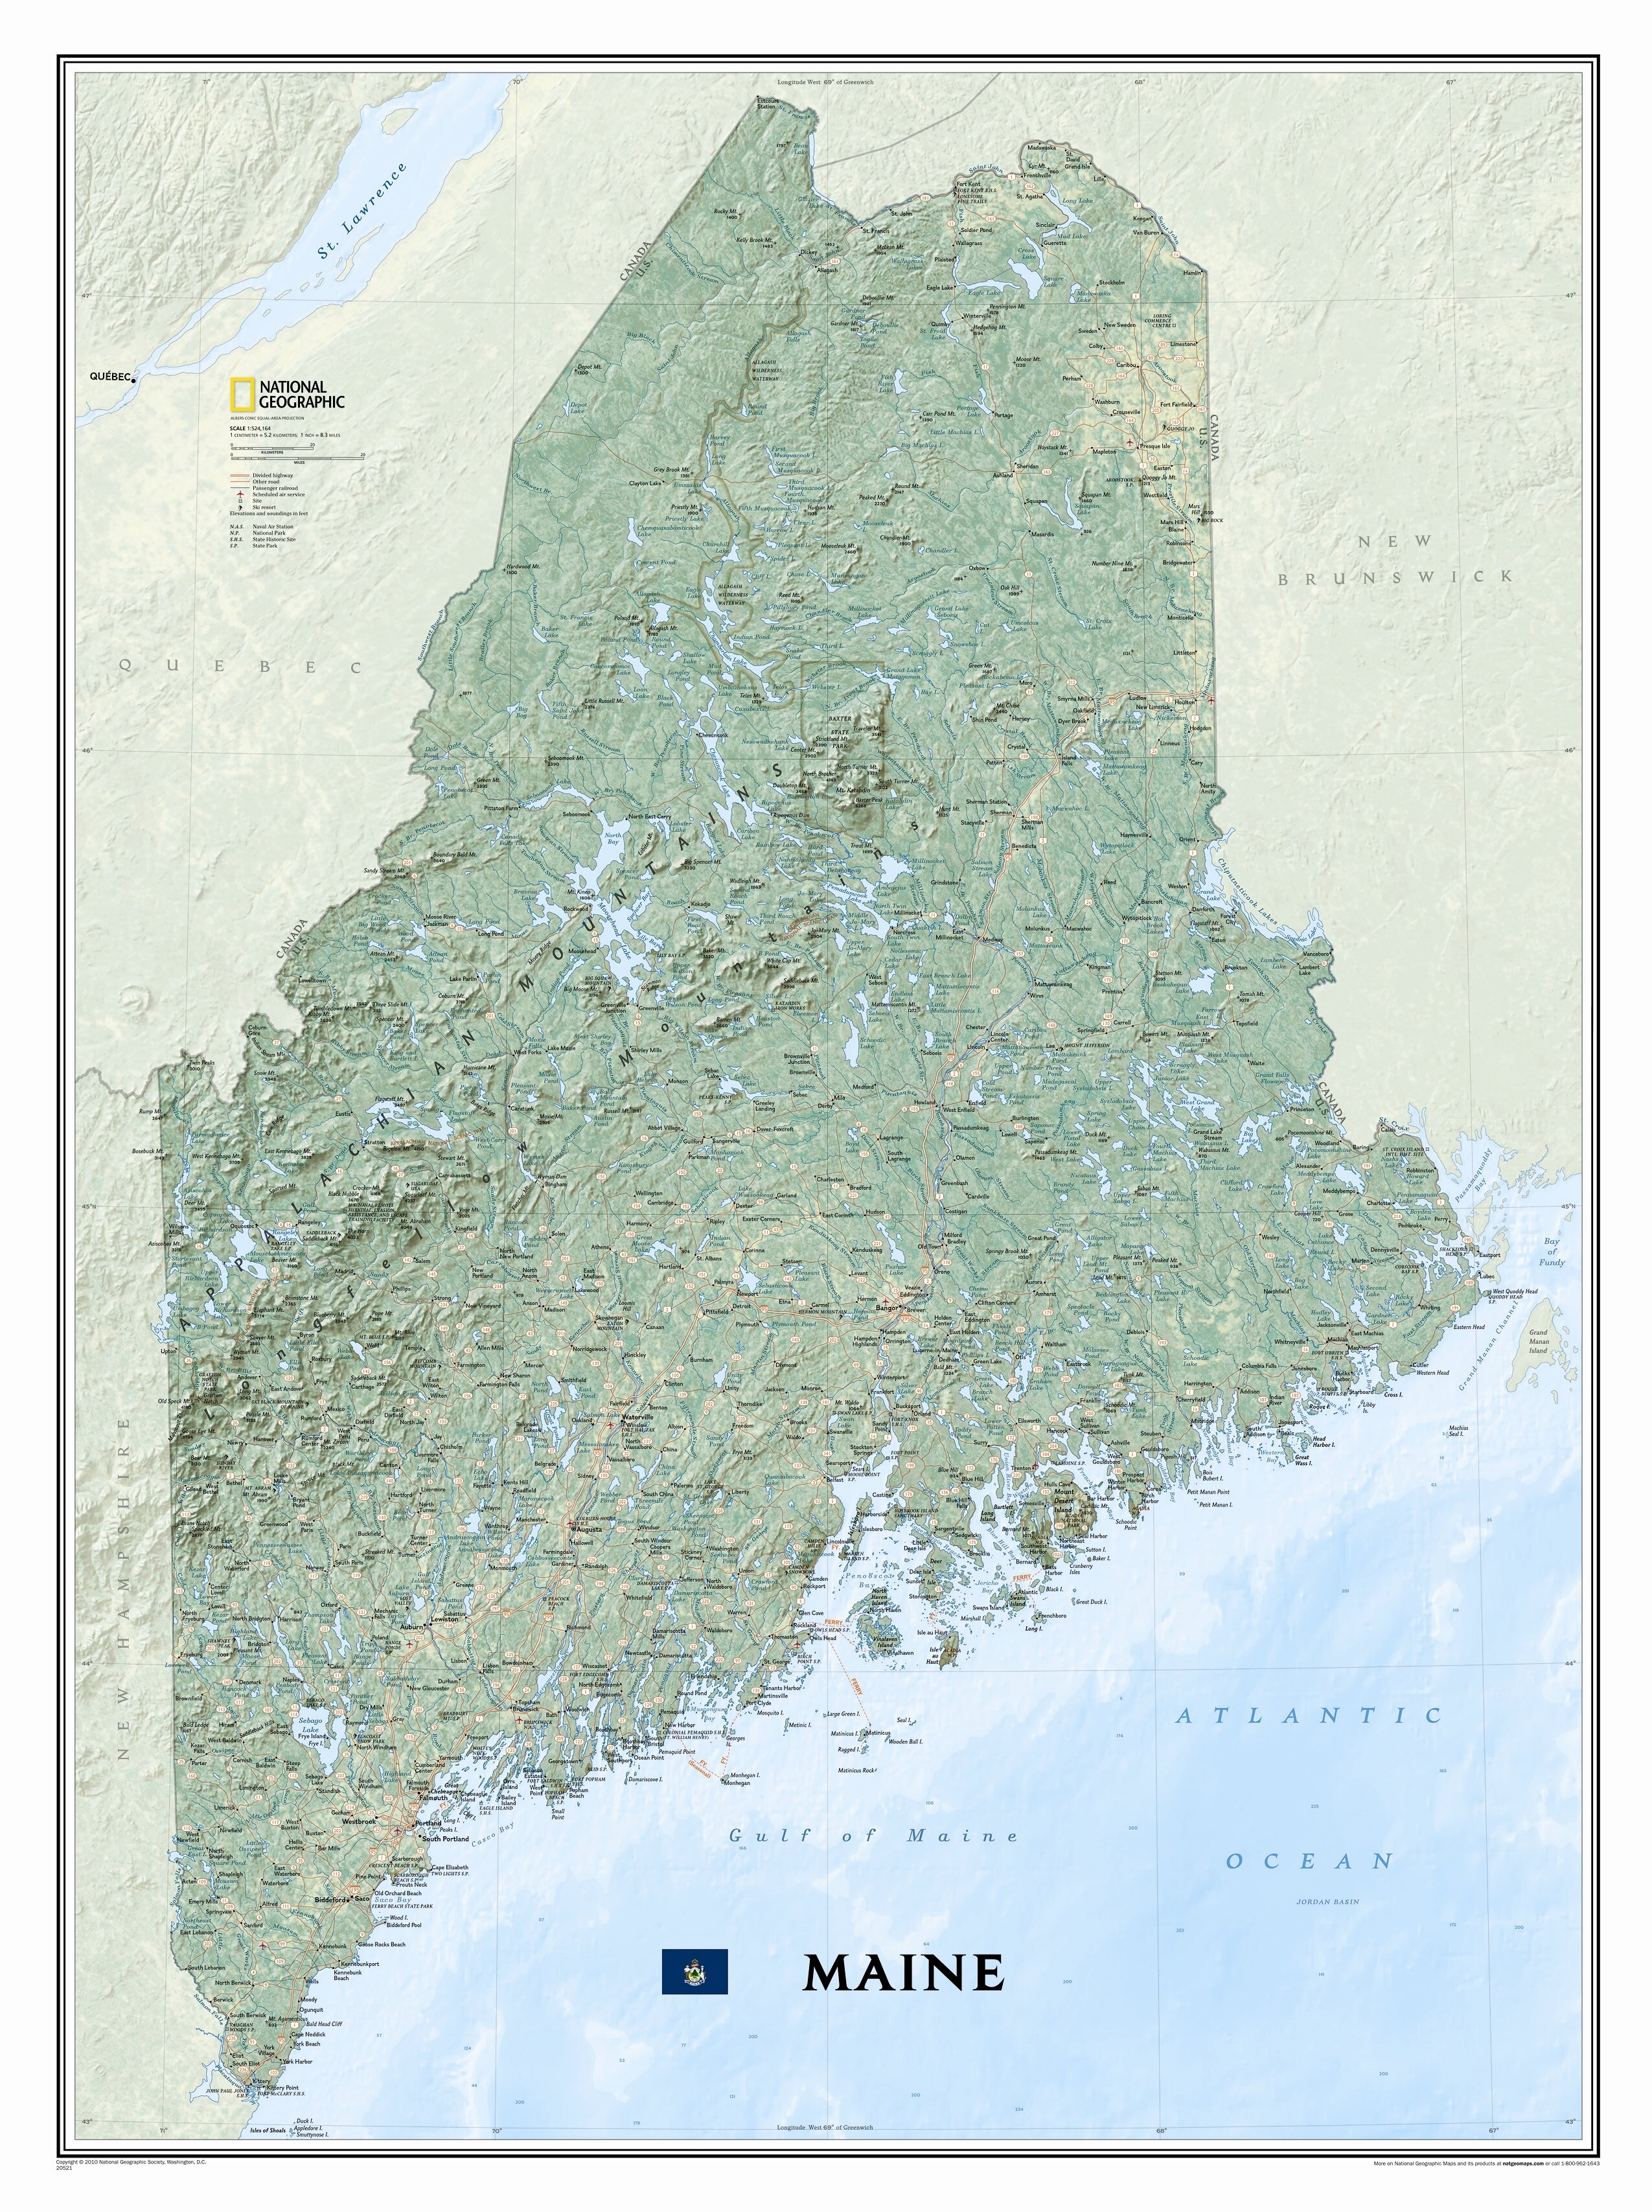 State Map Of Maine.National Geographic Maps Maine State Wall Map Reviews Wayfair